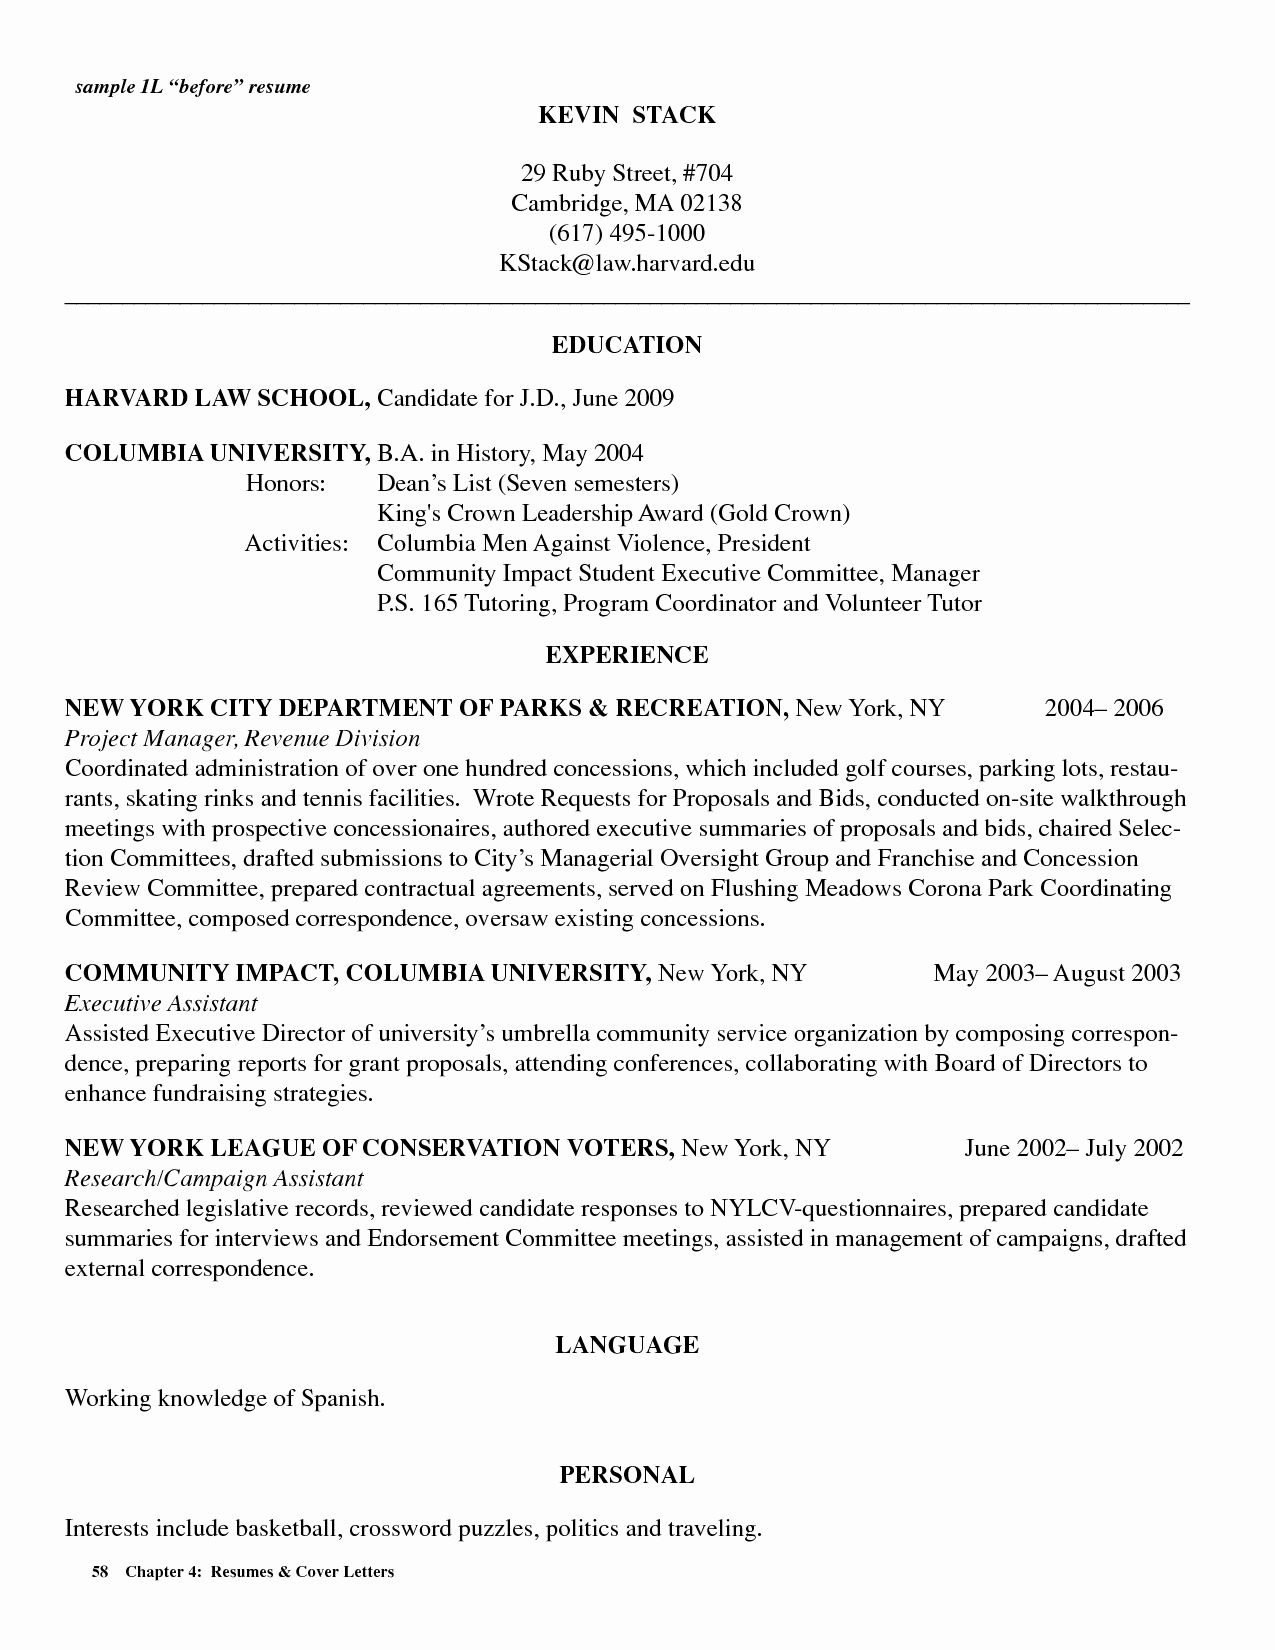 Legal Assistant Resume Example & Writing Tips Student resume